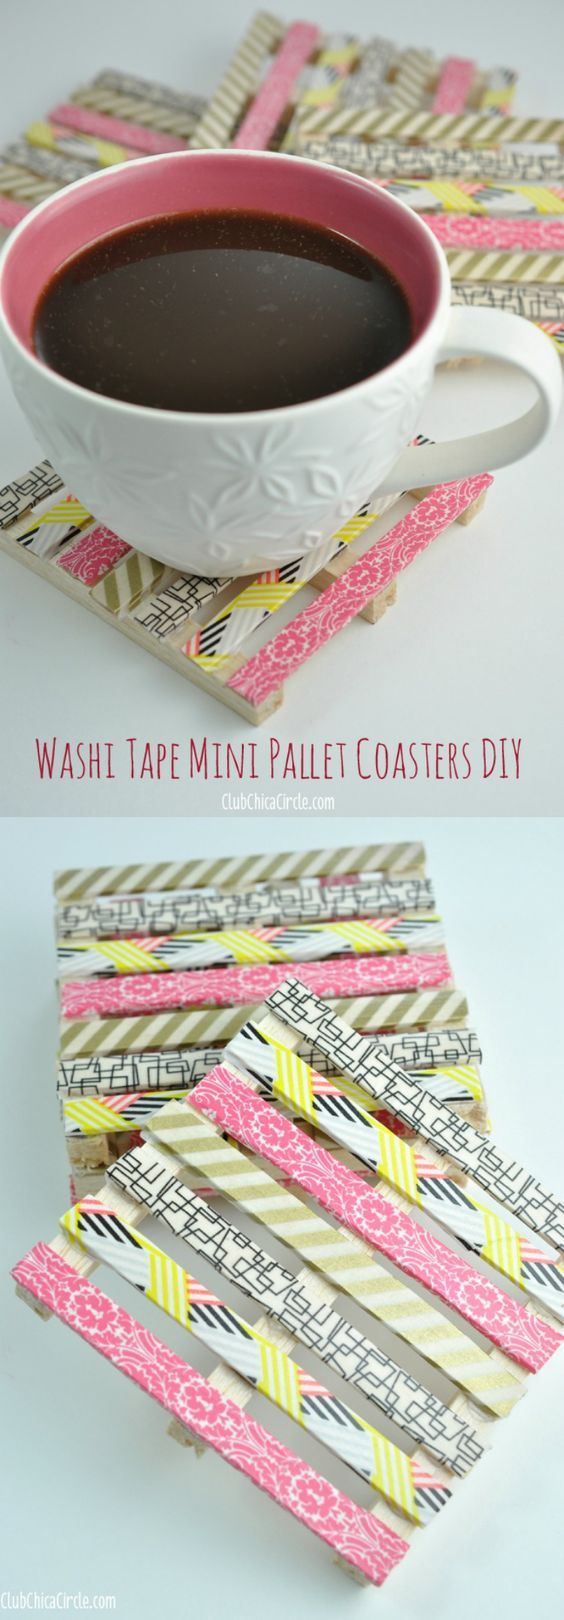 Washi Tape Mini Wood Pallet DIY Coasters.